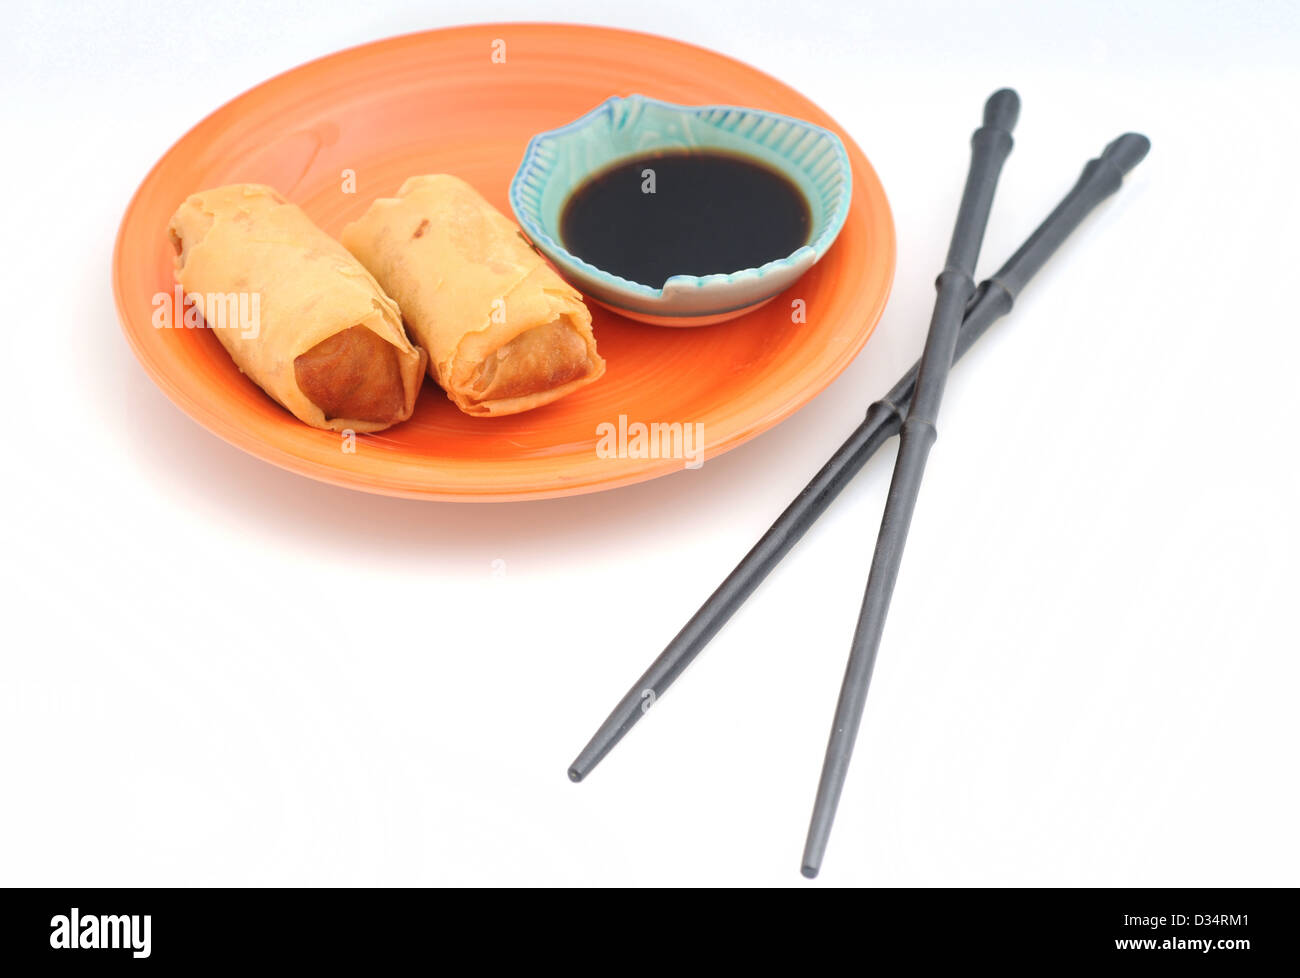 Two spring rolls or egg rolls with chopsticks - Stock Image